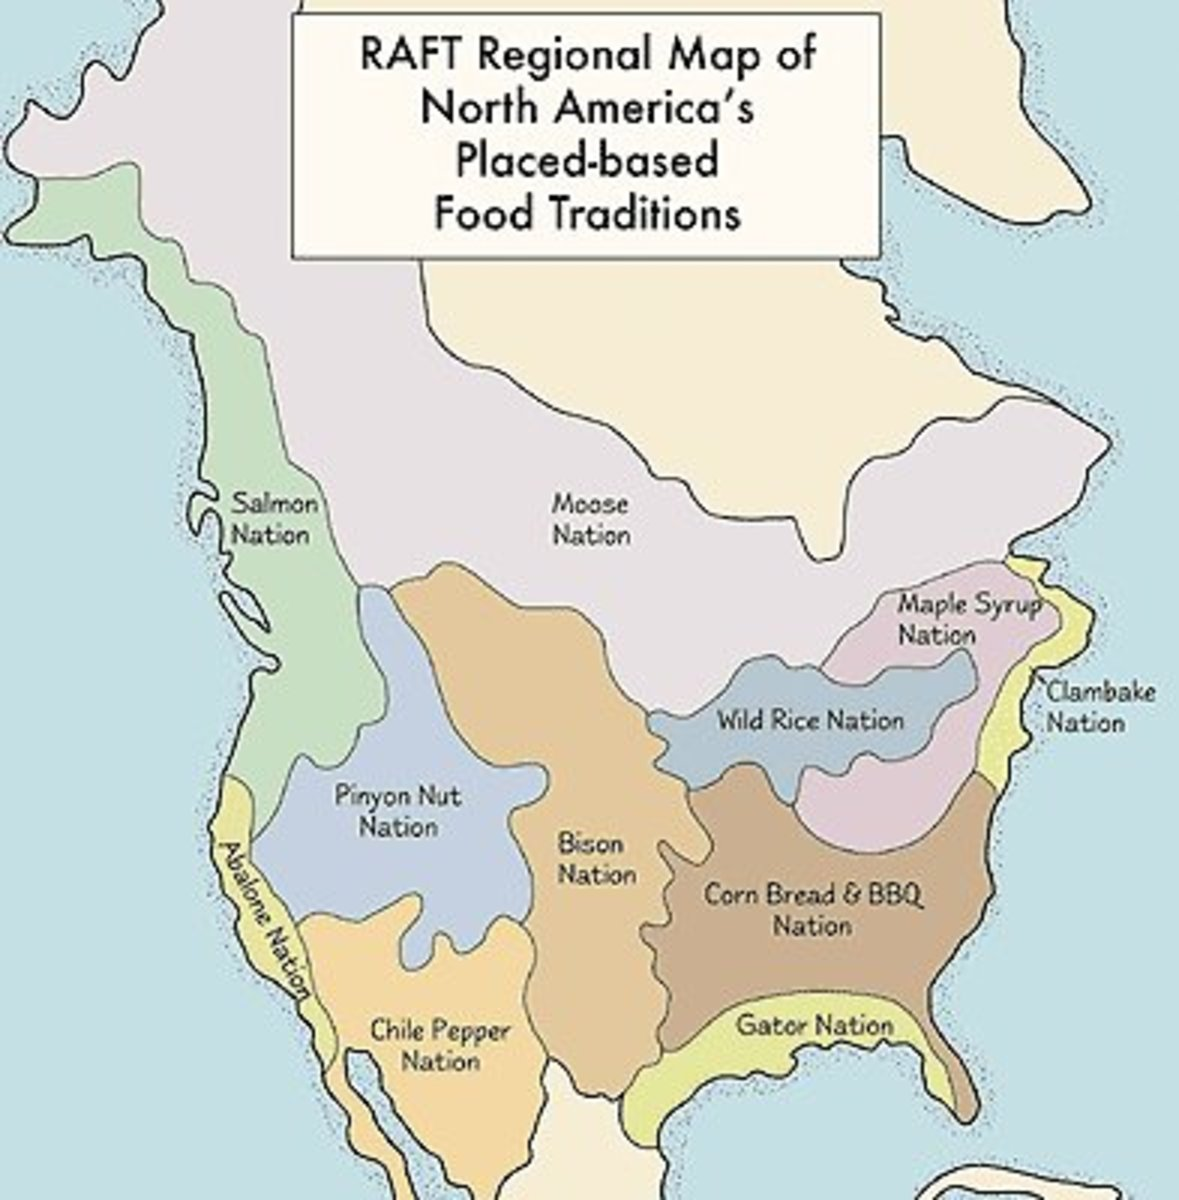 Source: http://www.slowfoodusa.org/index.php/programs/details/raft/